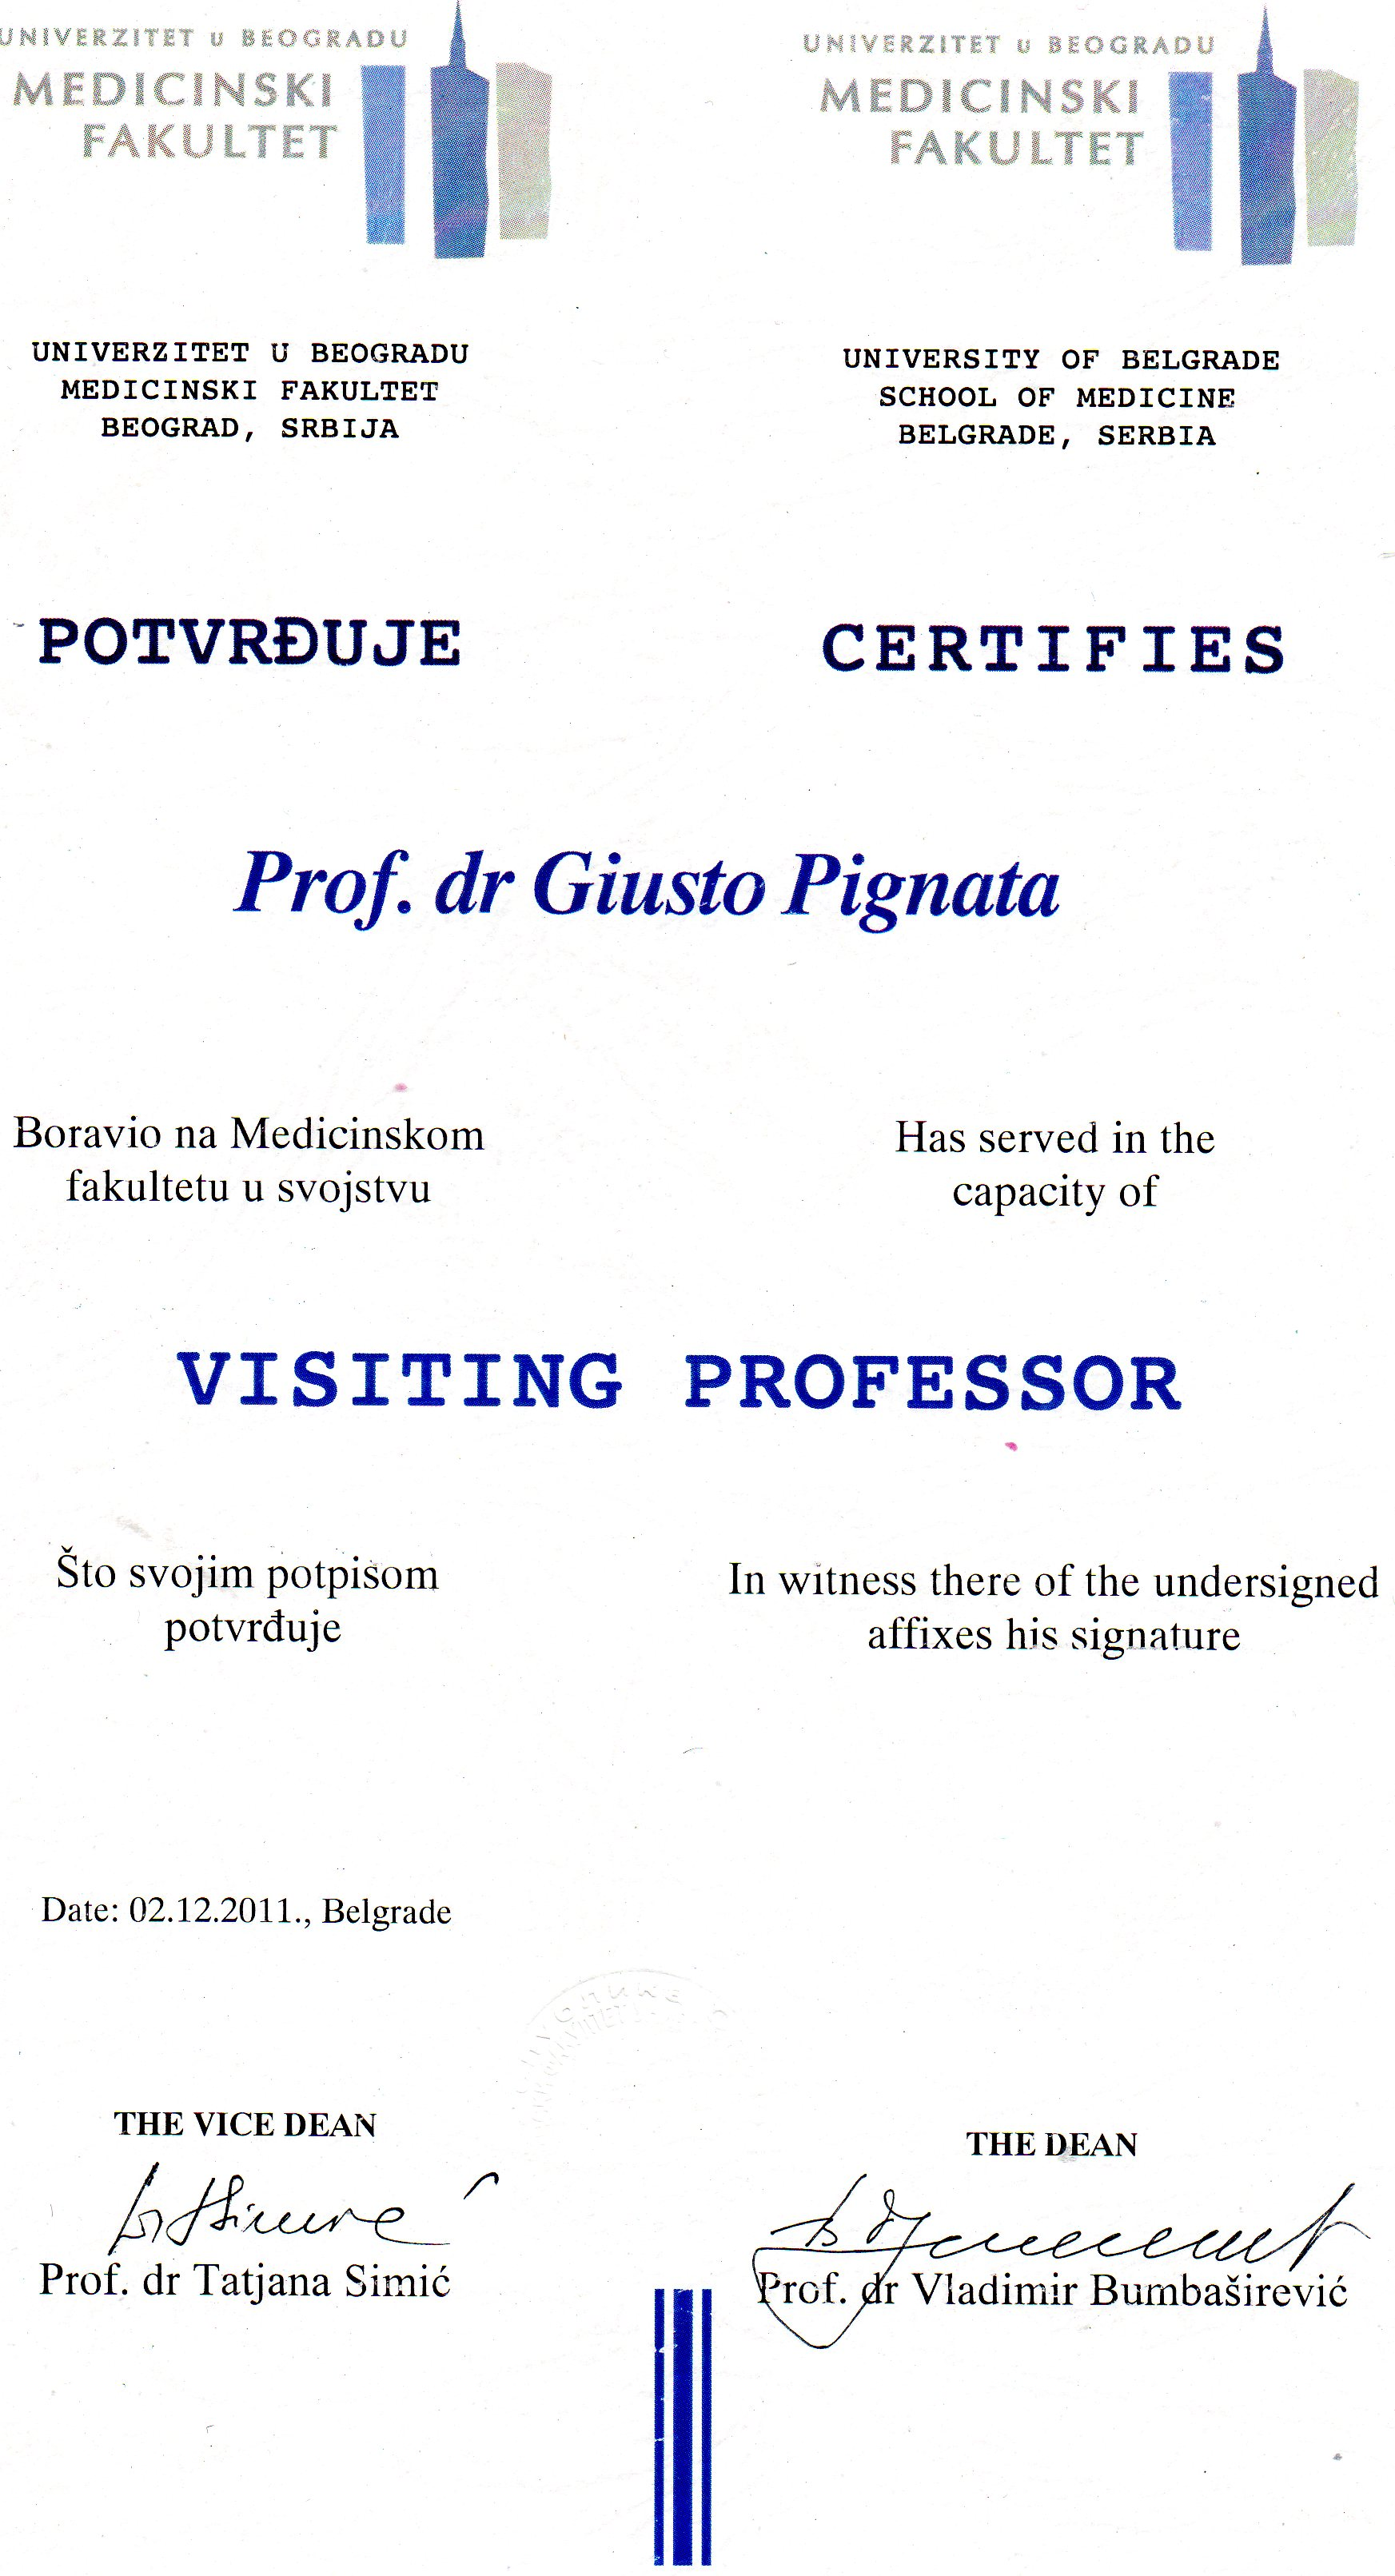 visiting professor 2